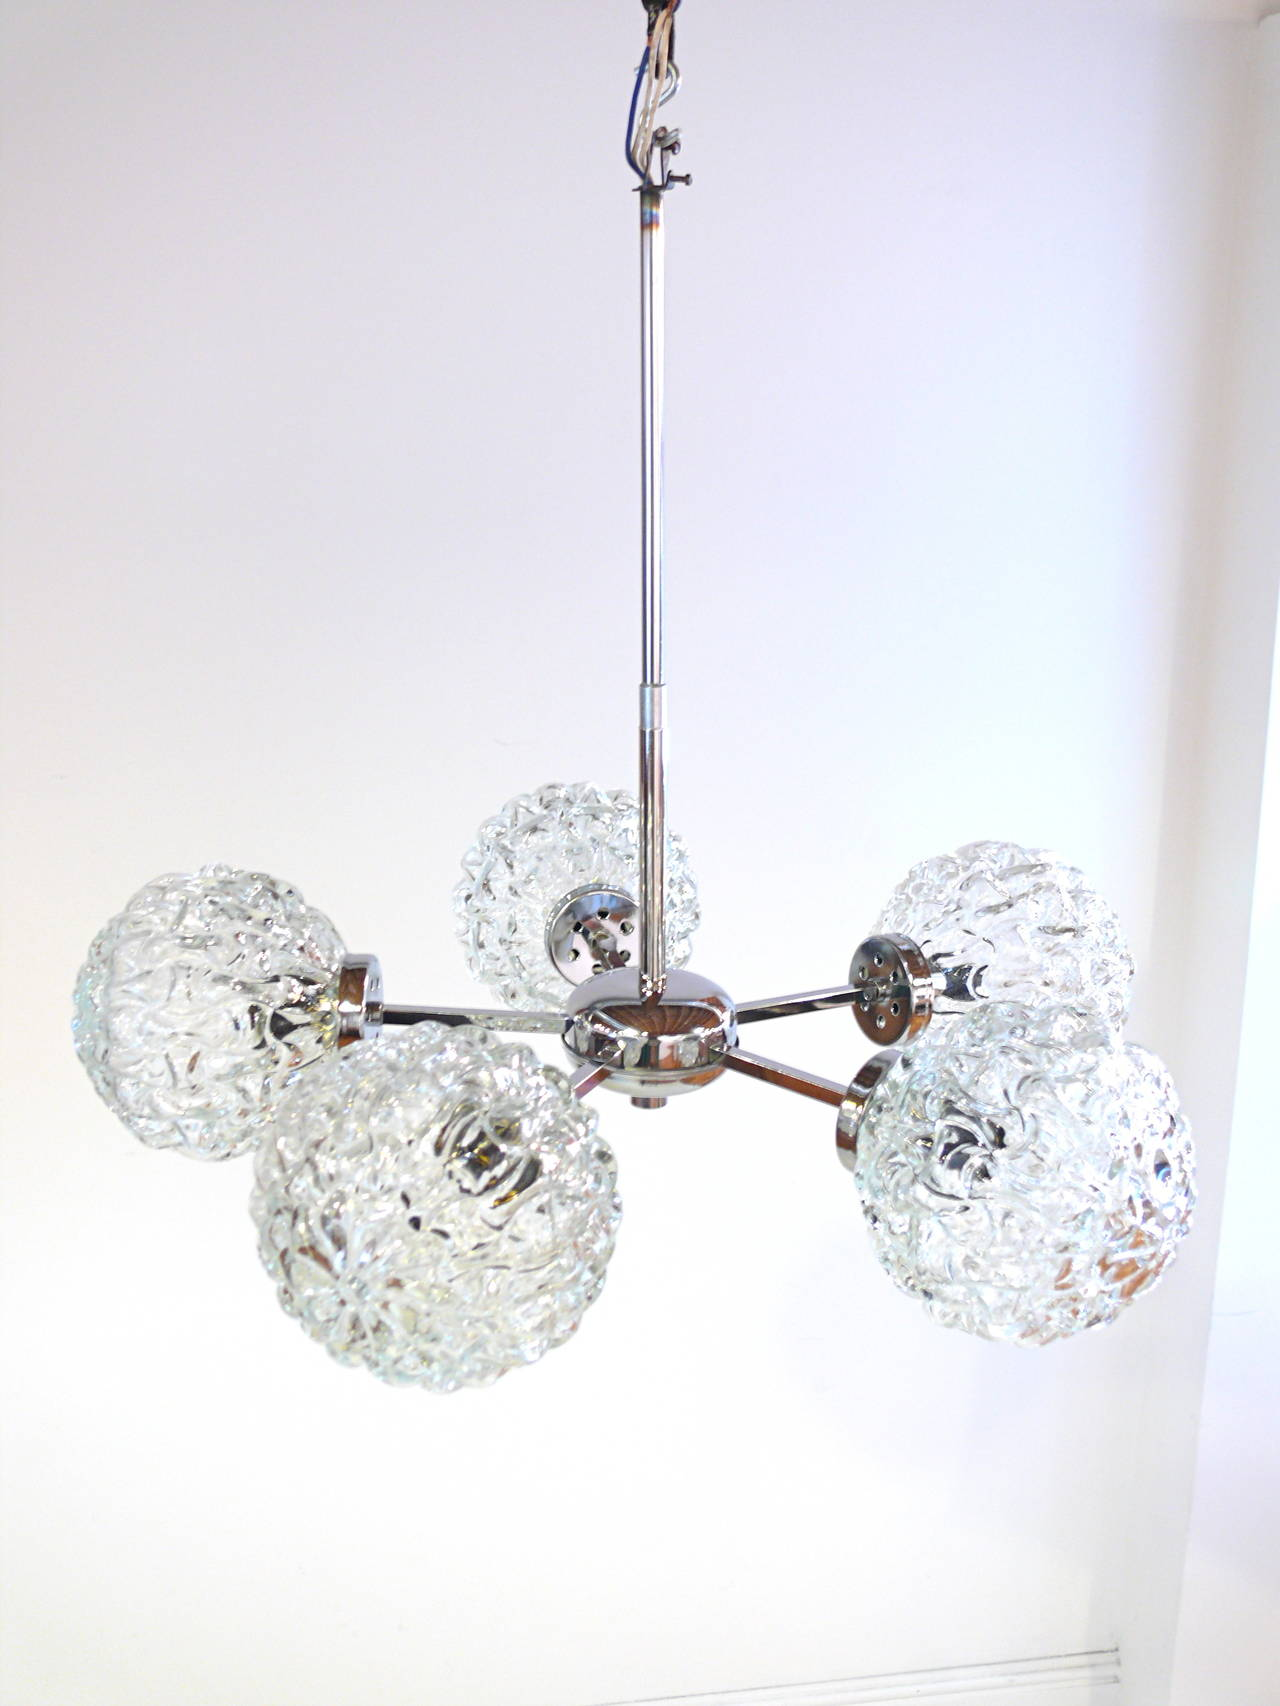 Mid-Century Modern Five-Globe Glass and Chrome Sputnik Chandelier in the Style of Kalmar For Sale